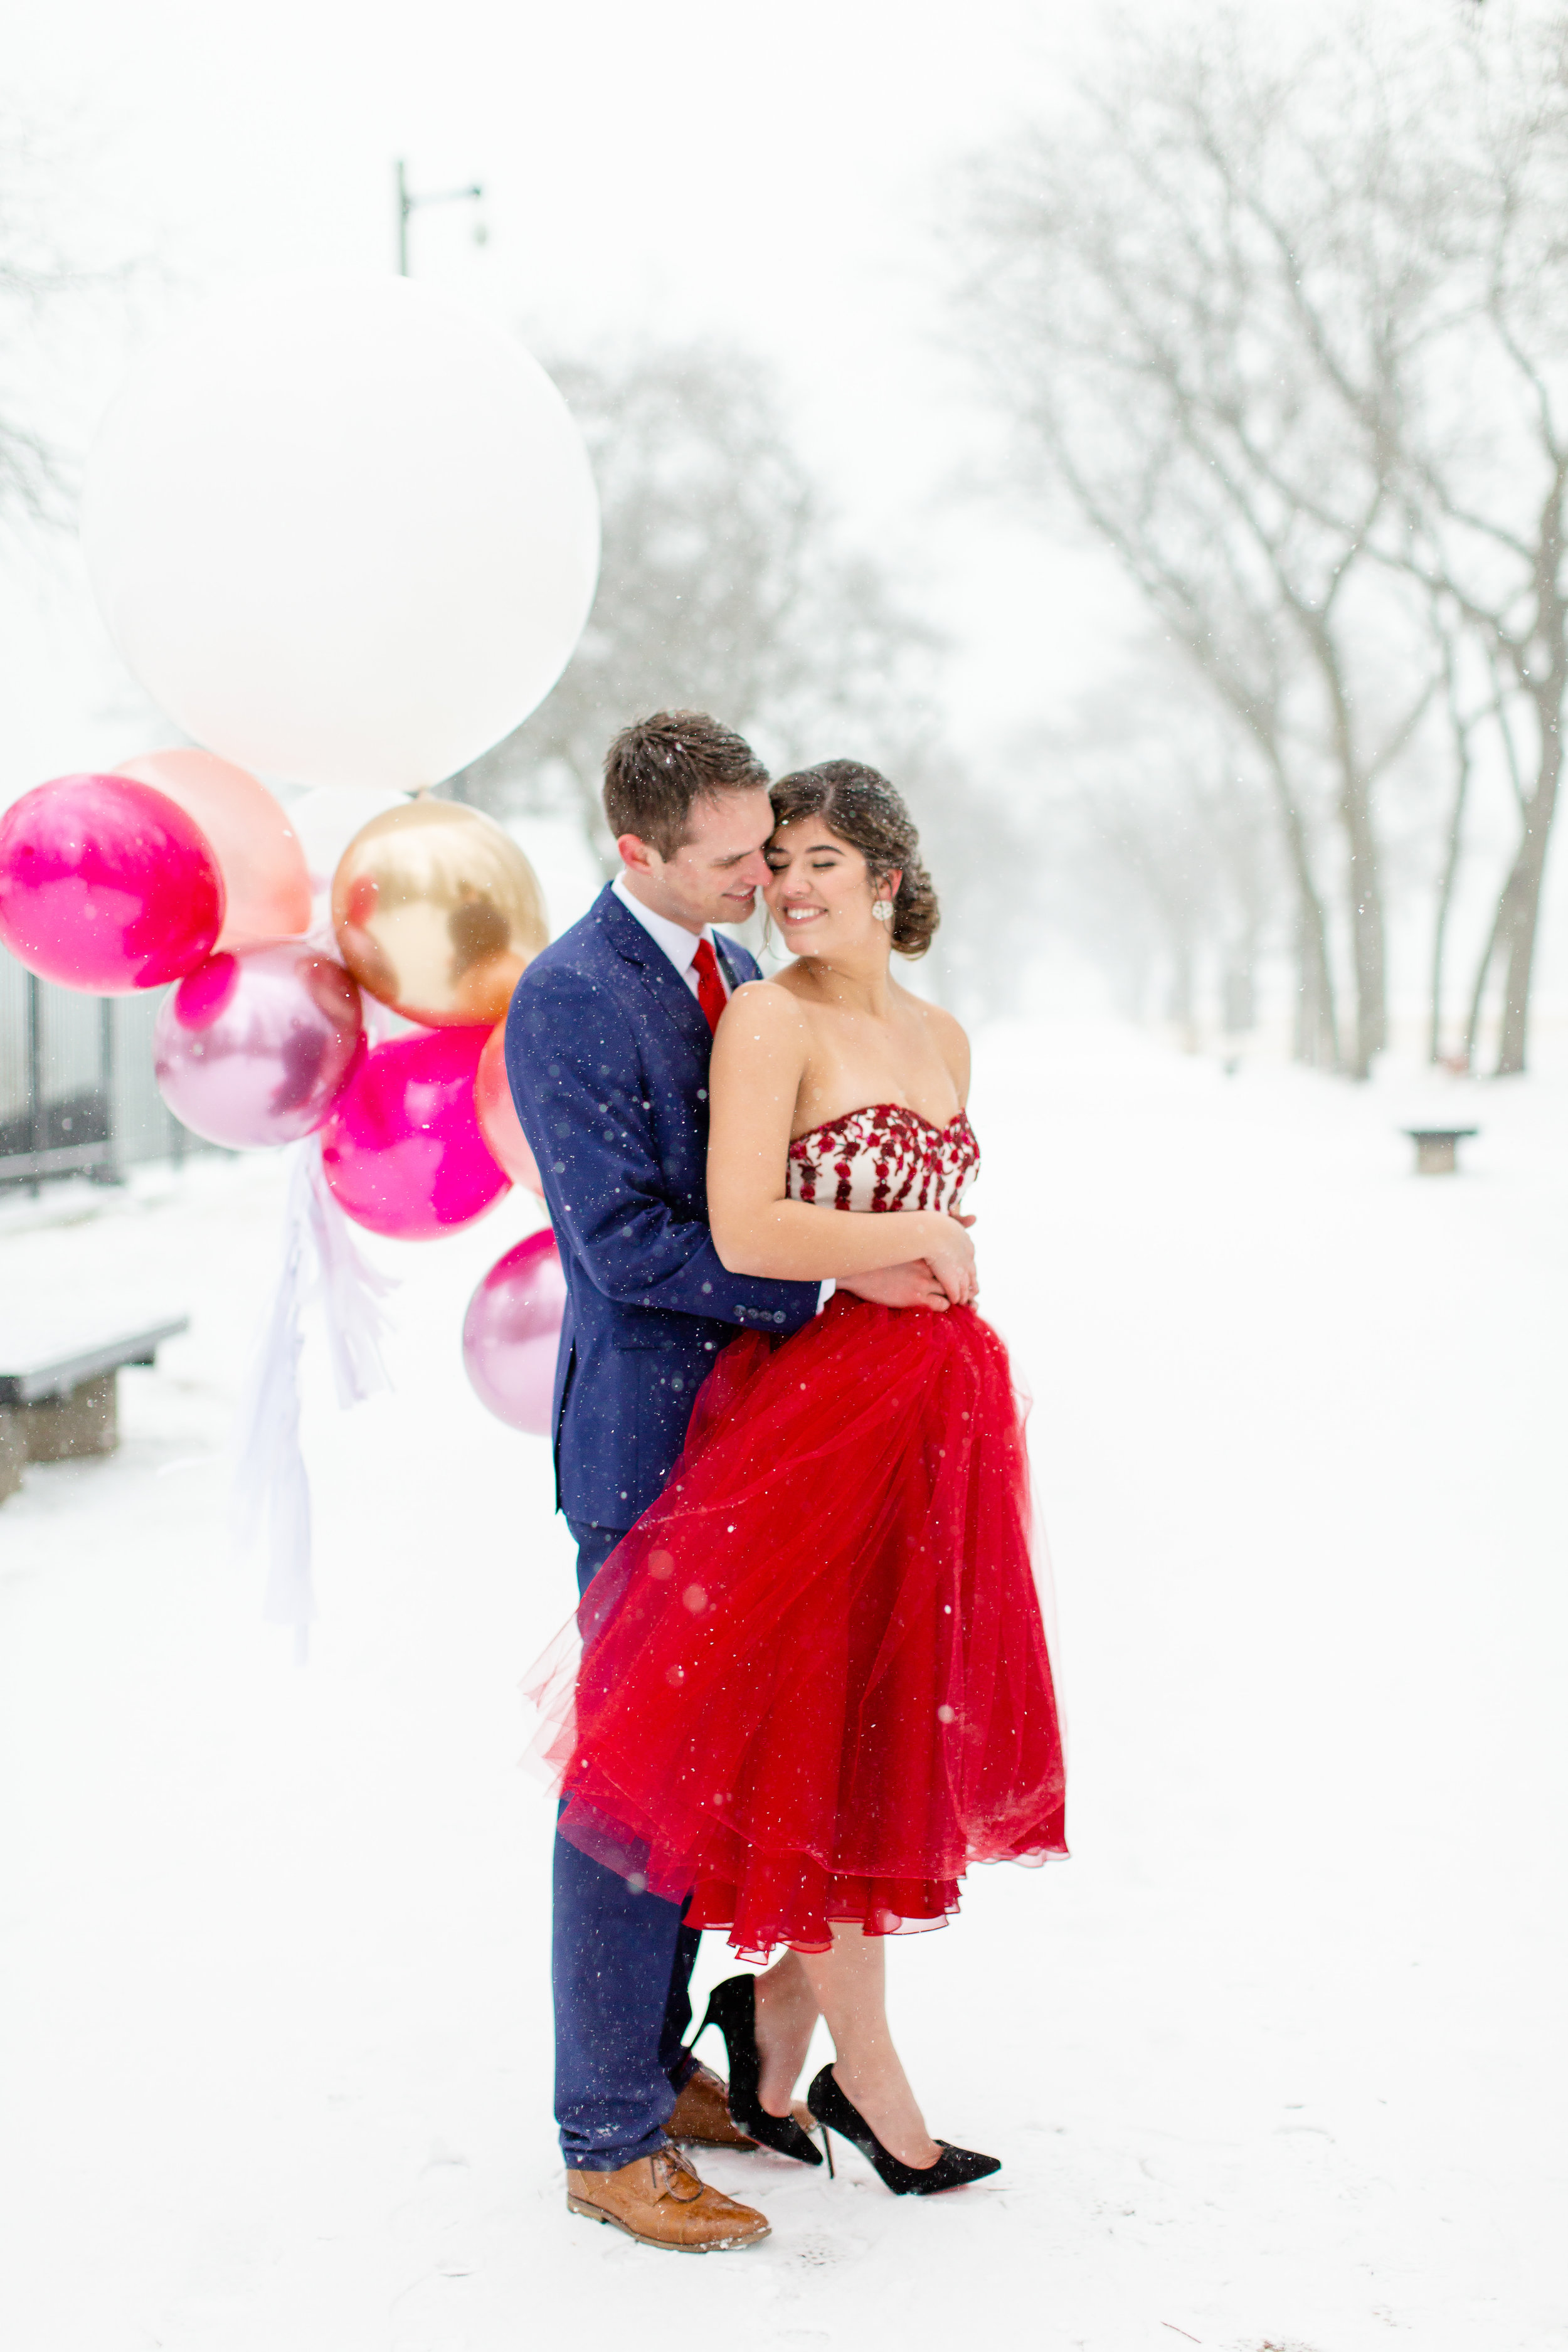 Snowy engagement photo styled shoot in downtown Chicago captured by Amy Mulder Photography. See more engagement photo ideas at CHItheeWED.com!